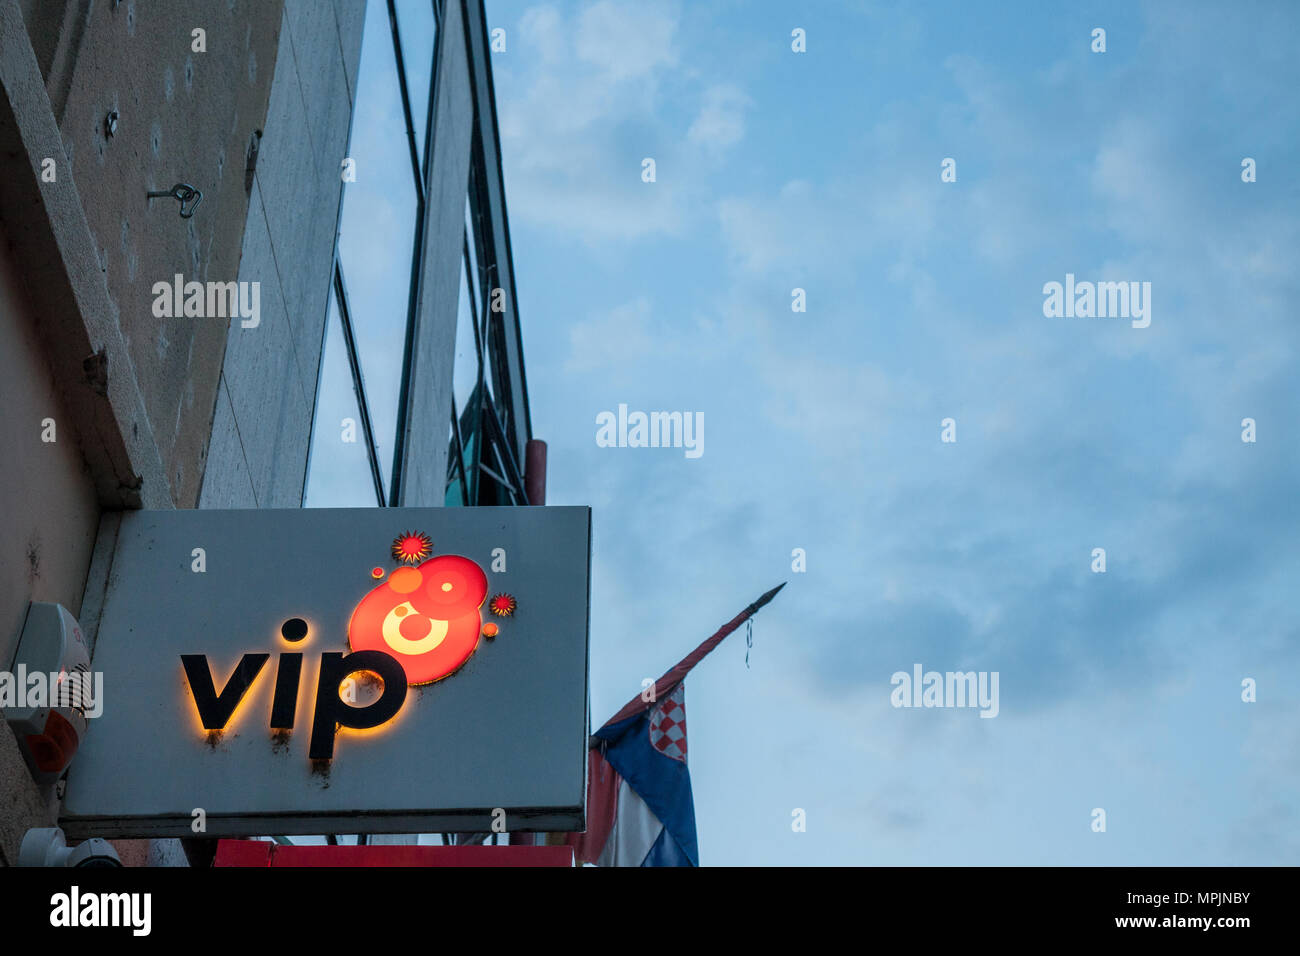 VUKOVAR, CROATIA - MAY 12, 2018: Vipnet Logo on their main shop in Vukovar. Vip Mobile, or Vipnet, is one of the main mobile network operator in Croat - Stock Image